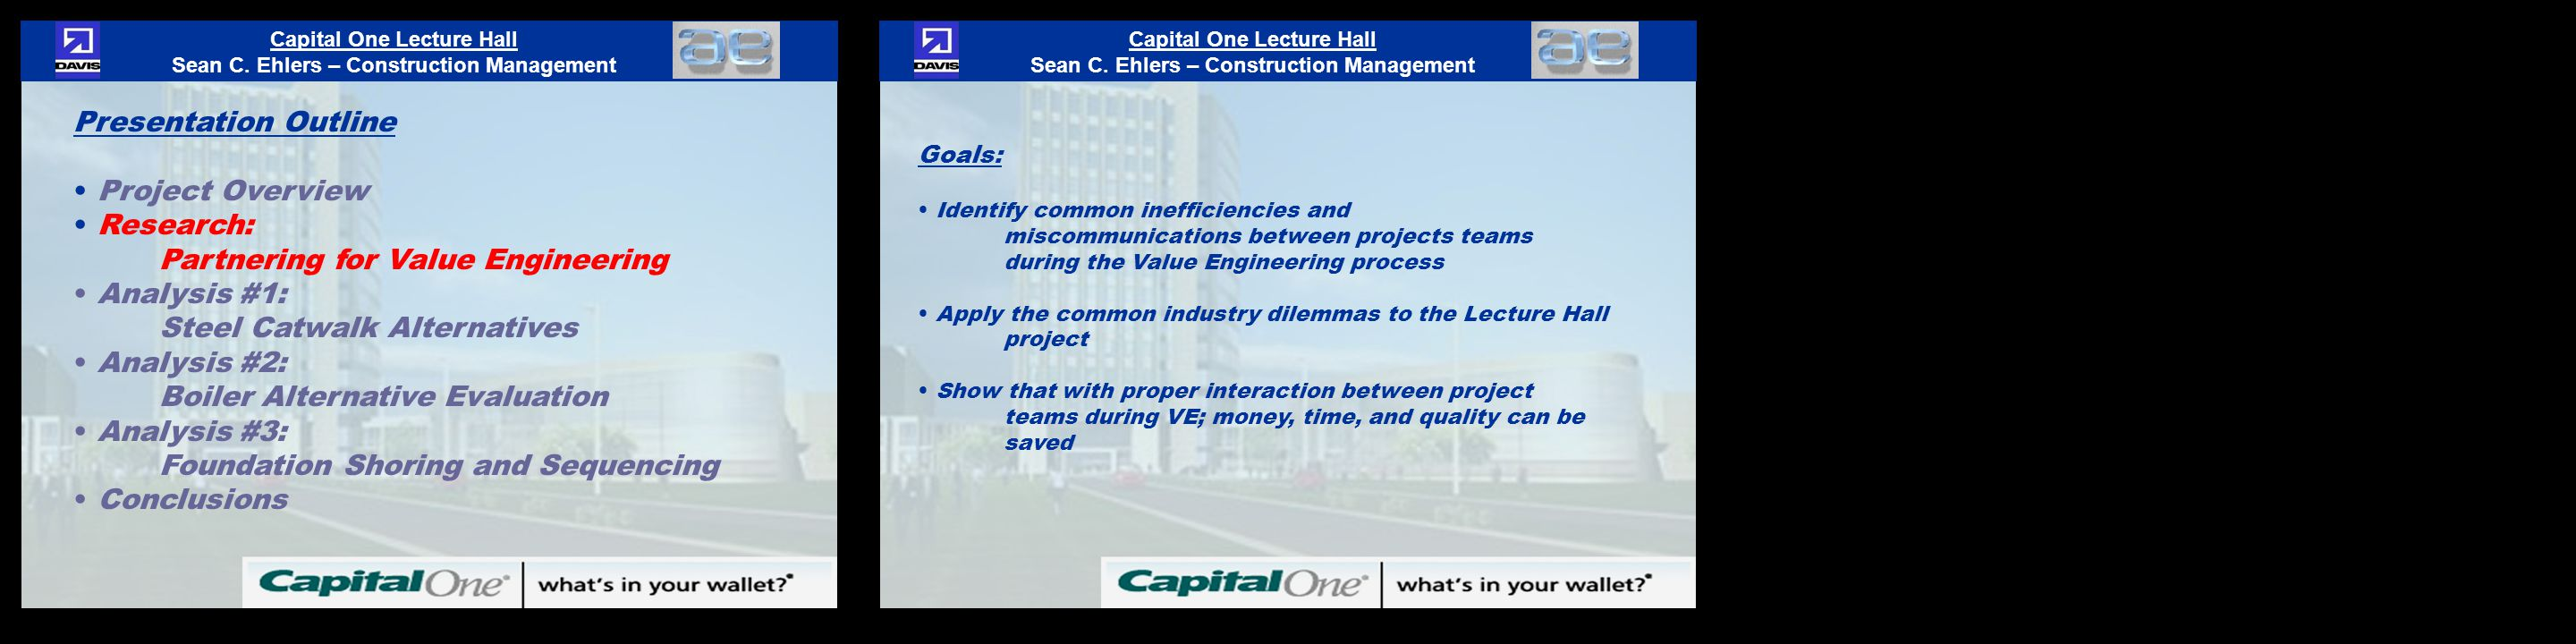 Engineering and construction project with money - Capital One Lecture Hall Sean C Ehlers Construction Management Capital One Lecture Hall Sean